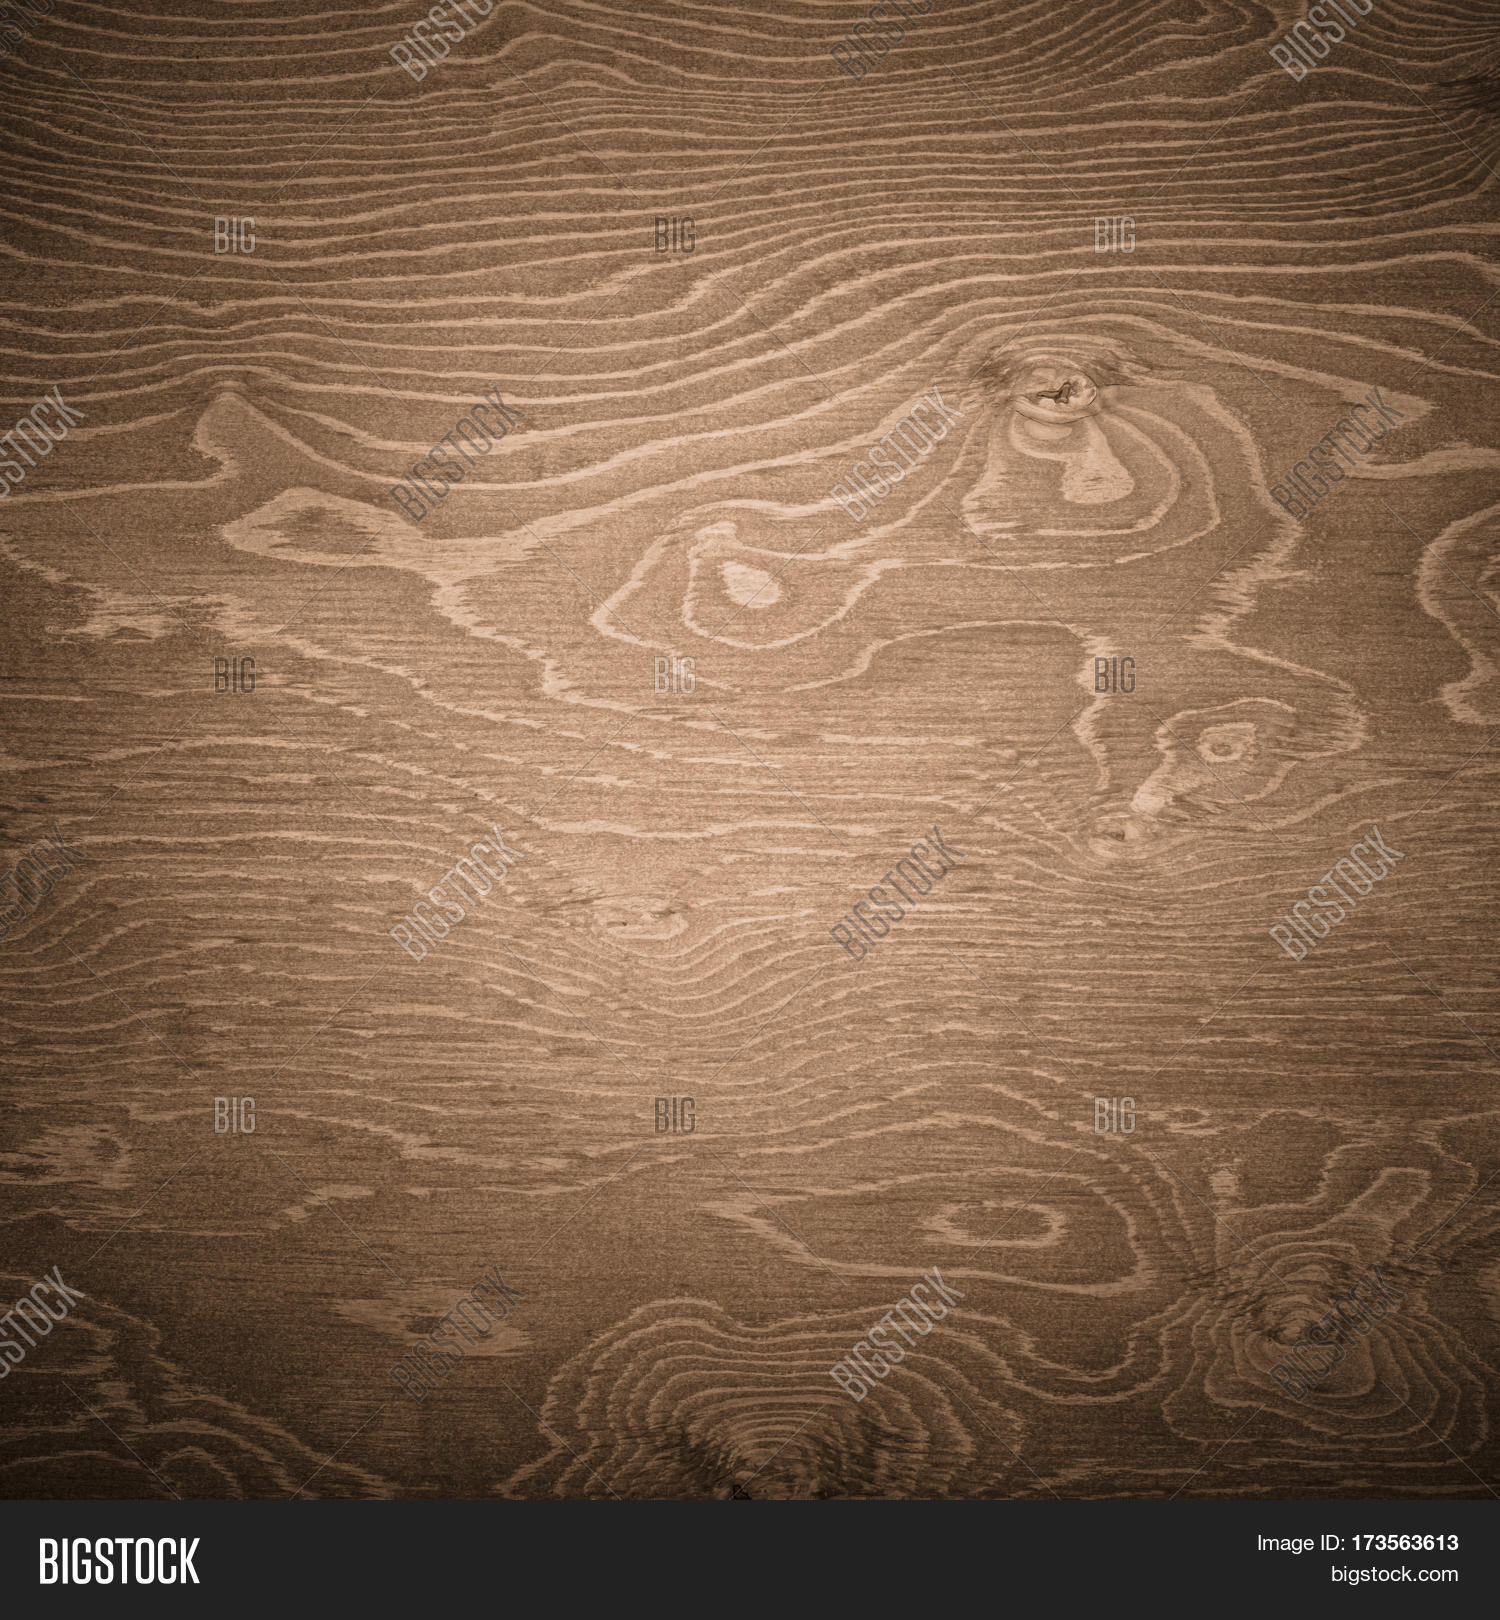 Wooden Table Surface ~ Old wood texture background surface image photo bigstock